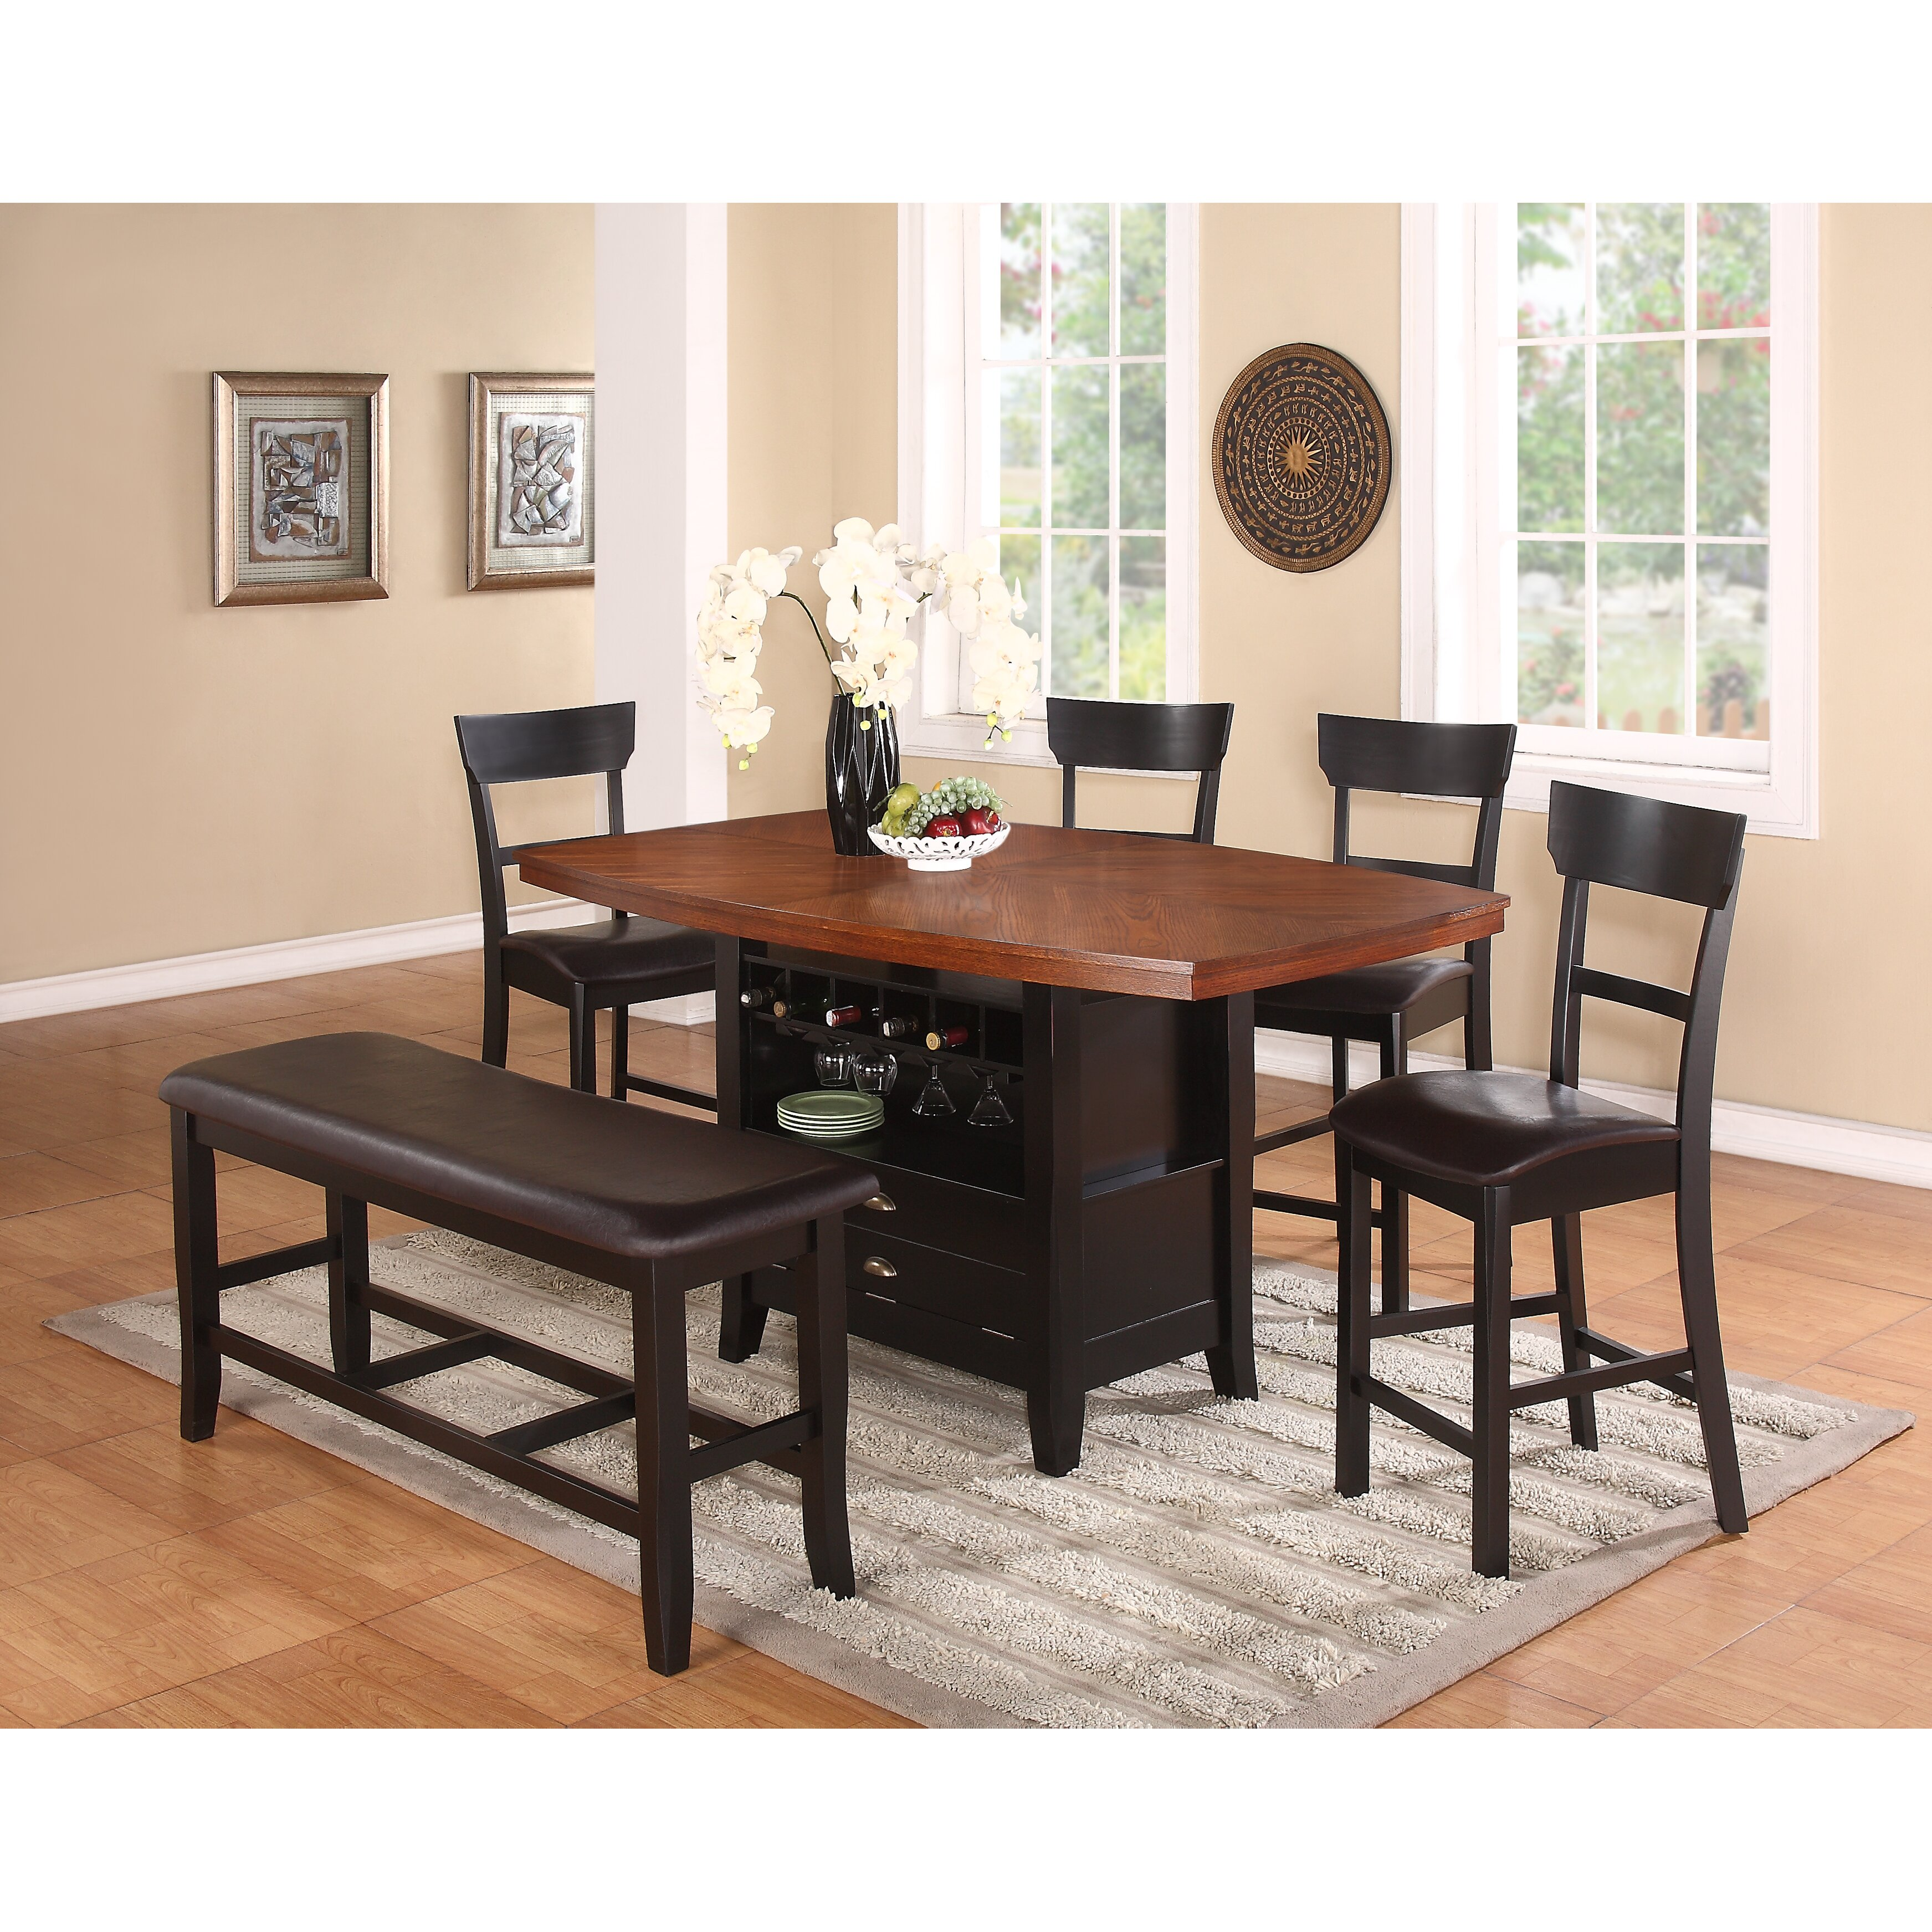 Red barrel studio wachusett counter height dining table for Red dining table